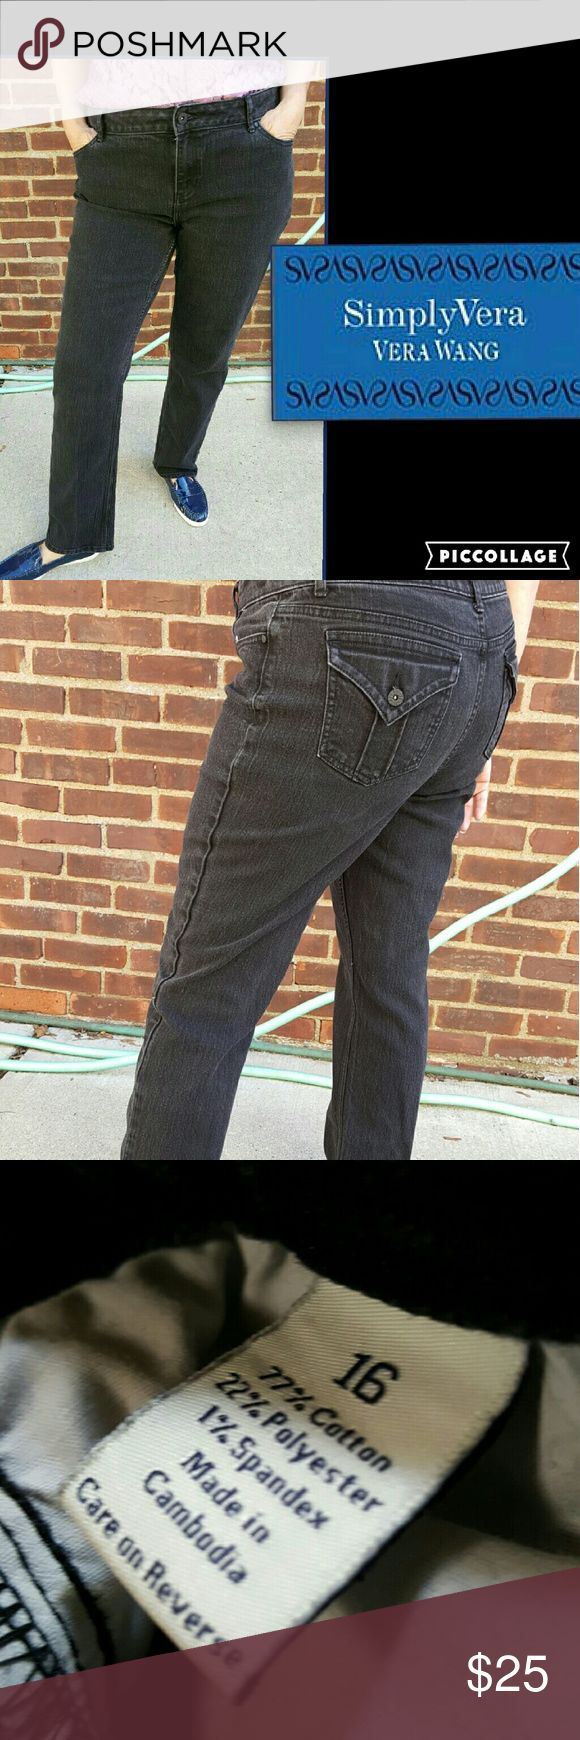 Simply Vera black denim jeans 16 These jeans are so comfortable and looks so good on. Approximate 17 inch waist with 9-inch rise and average length. For reference I wear 32 inch length and I am the model. Price firm. Simply Vera Vera Wang Jeans Straight Leg